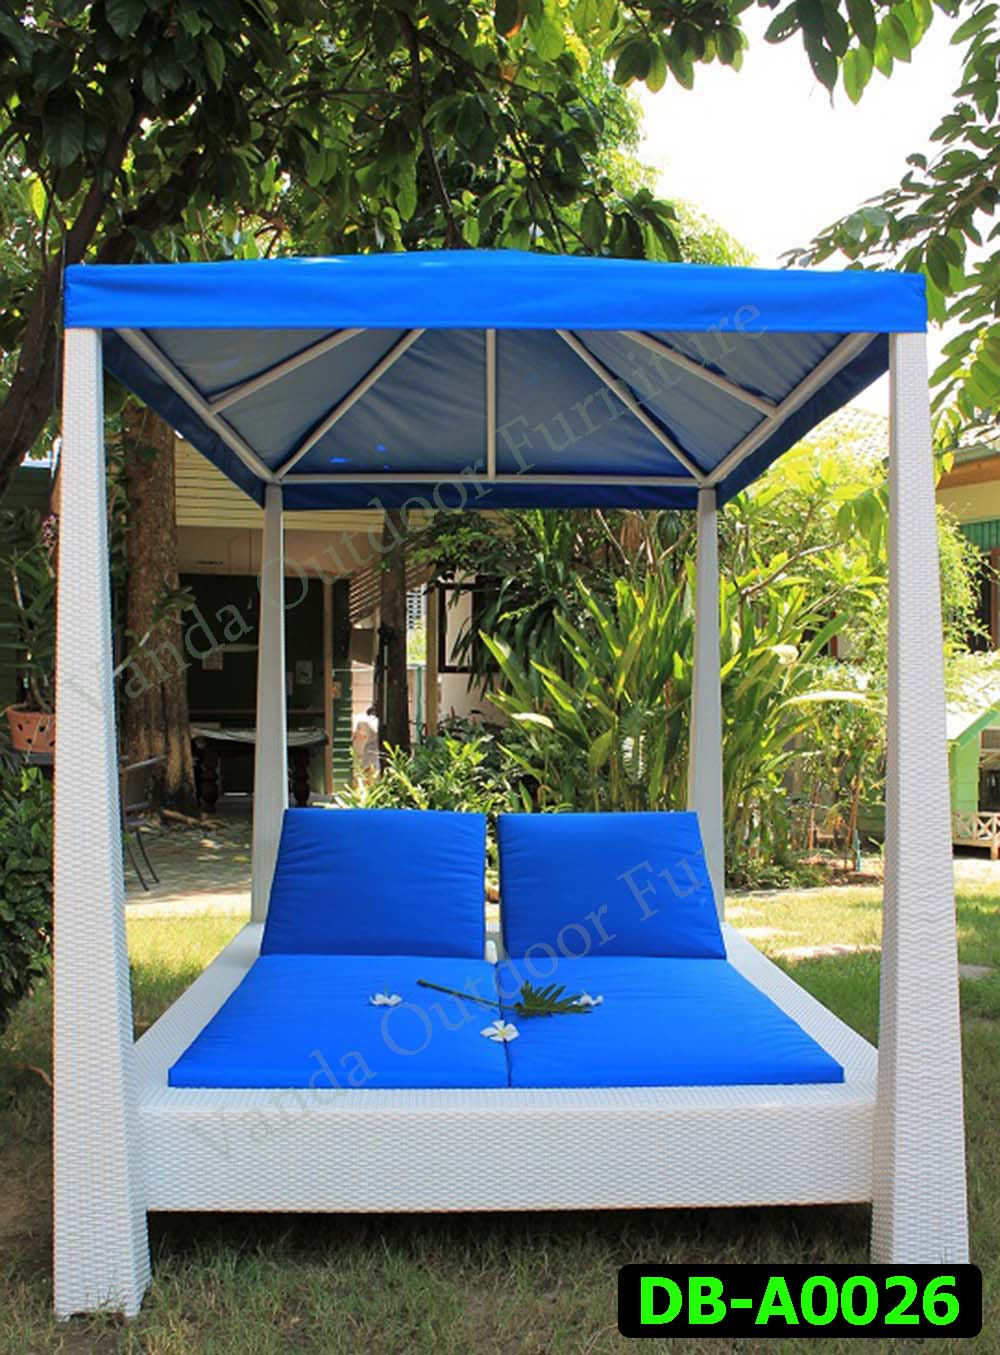 Rattan Daybed Product code DB-A0026